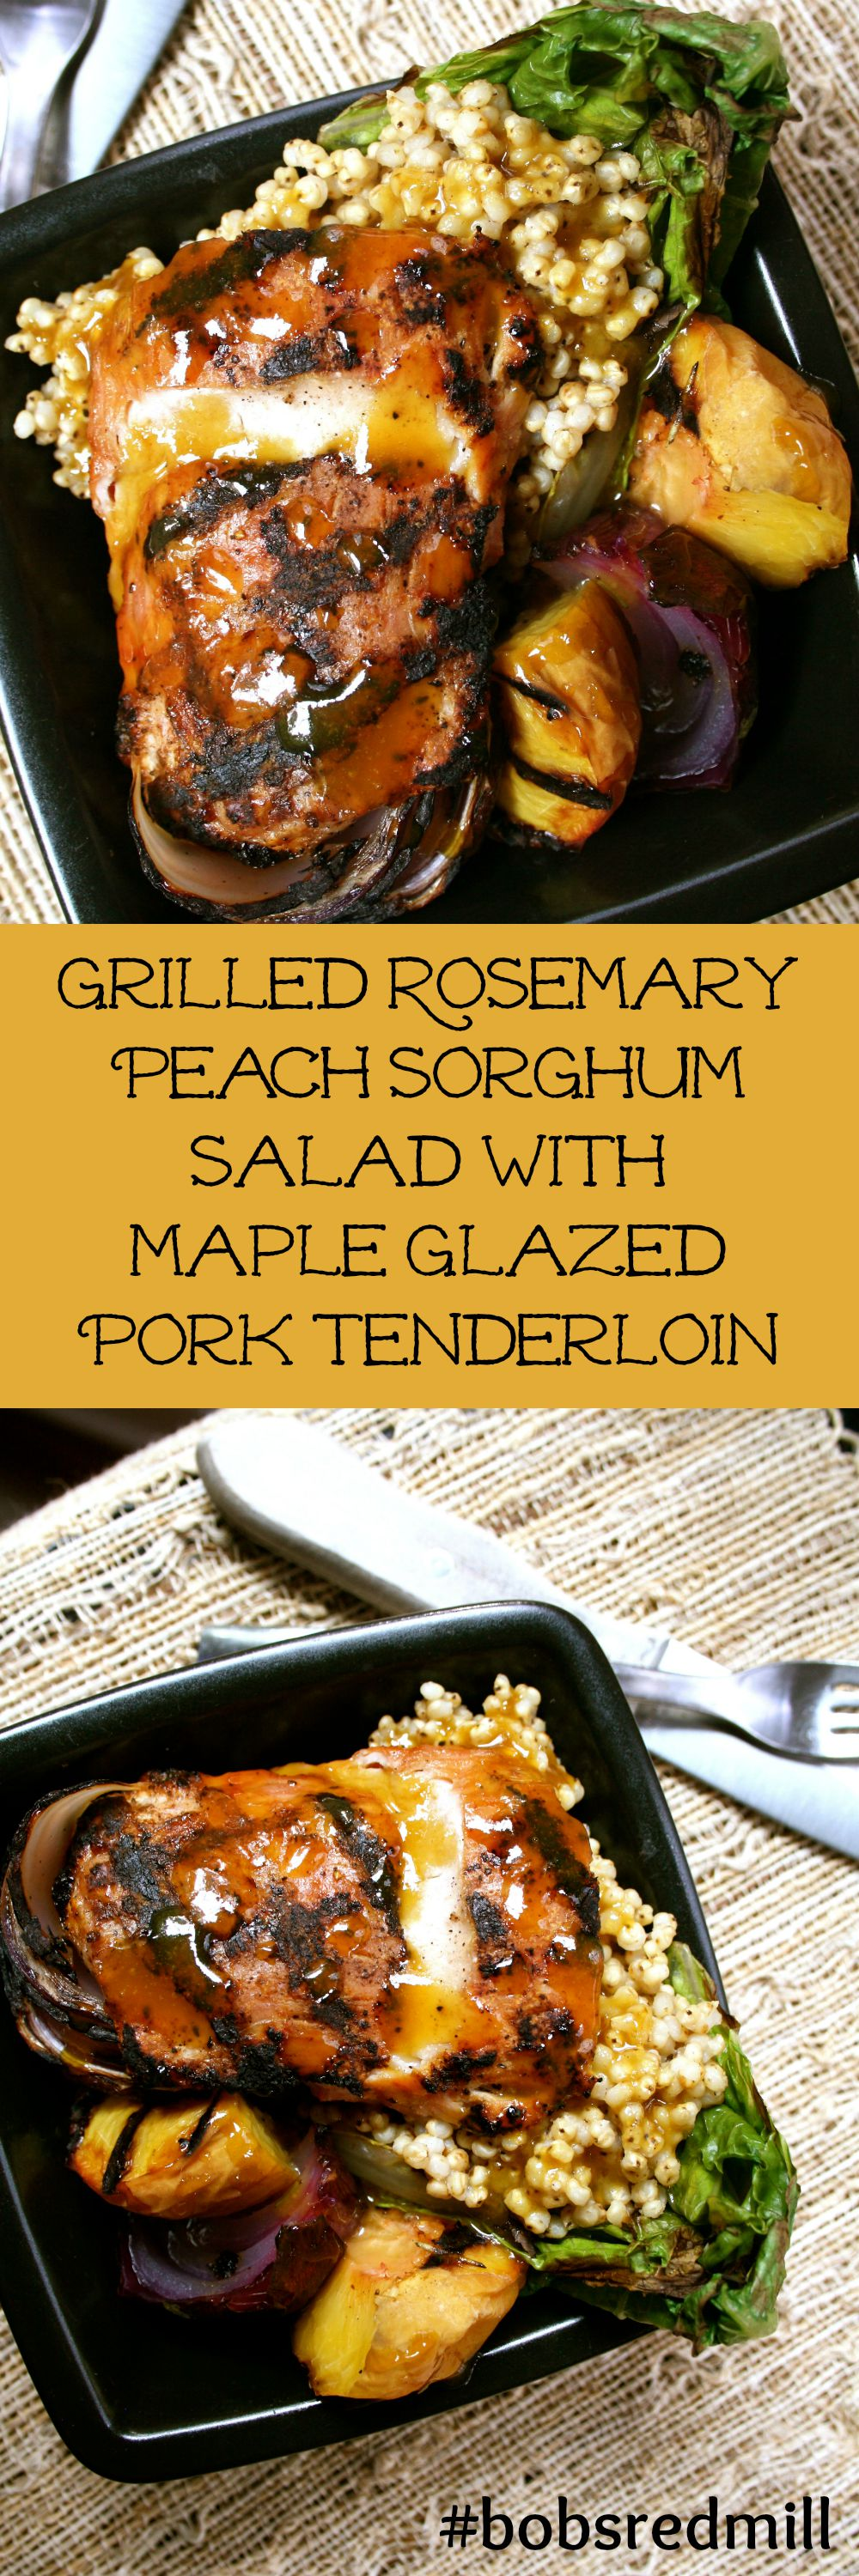 Grilled Rosemary Peach Sorghum Salad with Maple Glazed Pork Tenderloin: a gourmet meal in under an hour! Gluten Free and perfect for hot summer nights! // Bob's Red Mill